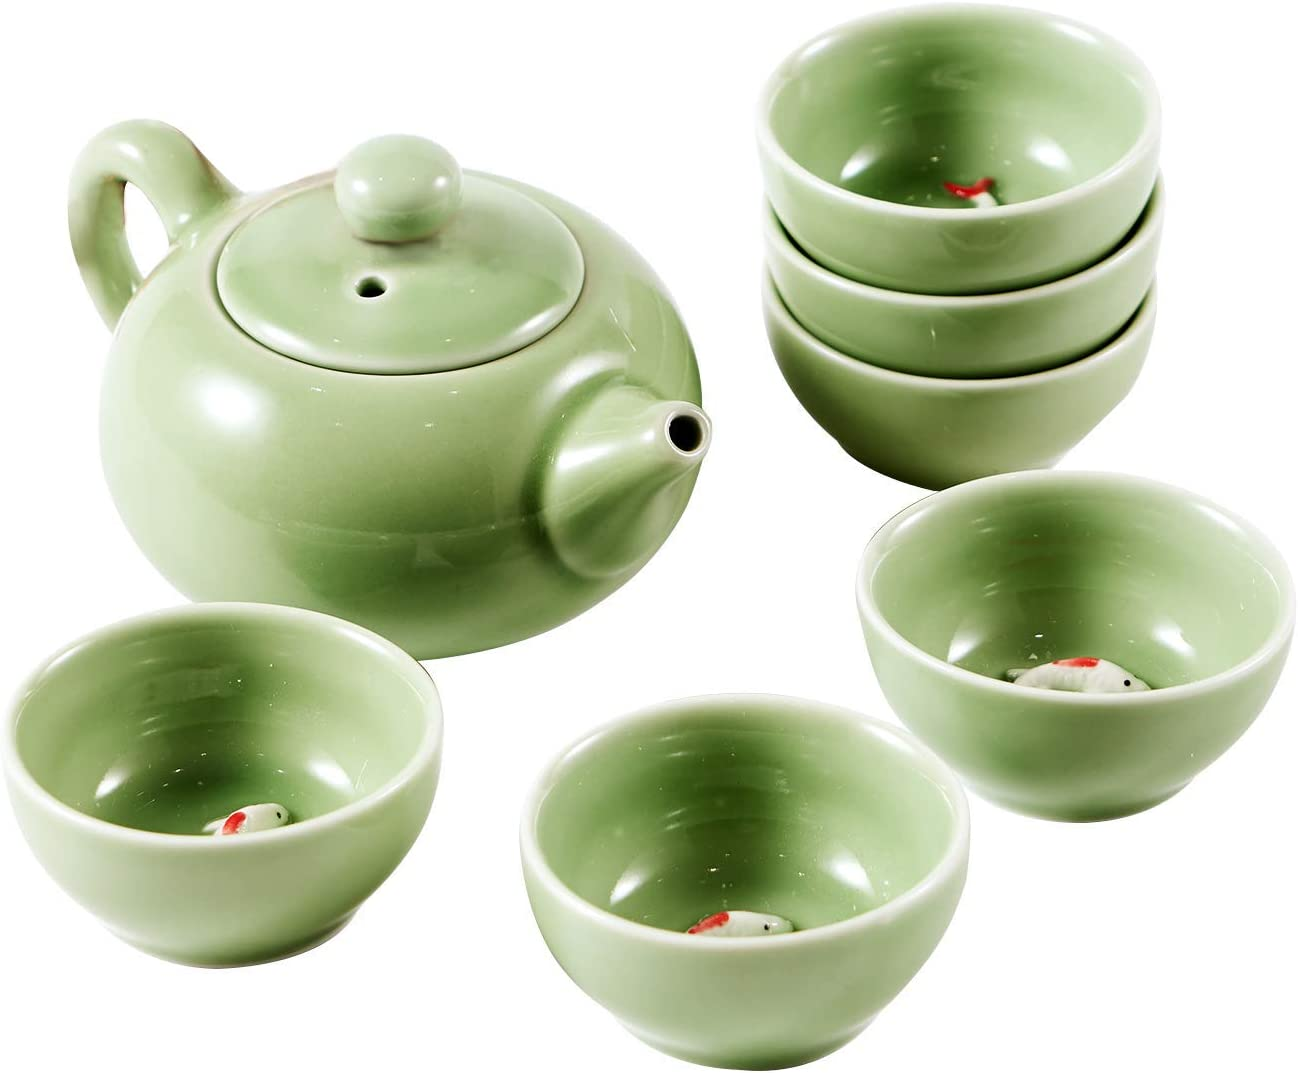 Chinese Kongfu Tea Set Ceramic Kung Fu Tea Cup Set Exquisite Oriental Porcelain Tea Ware Teapot Teacups China Tea Service Toy Tea Set for Home Office Use Gift (Green)